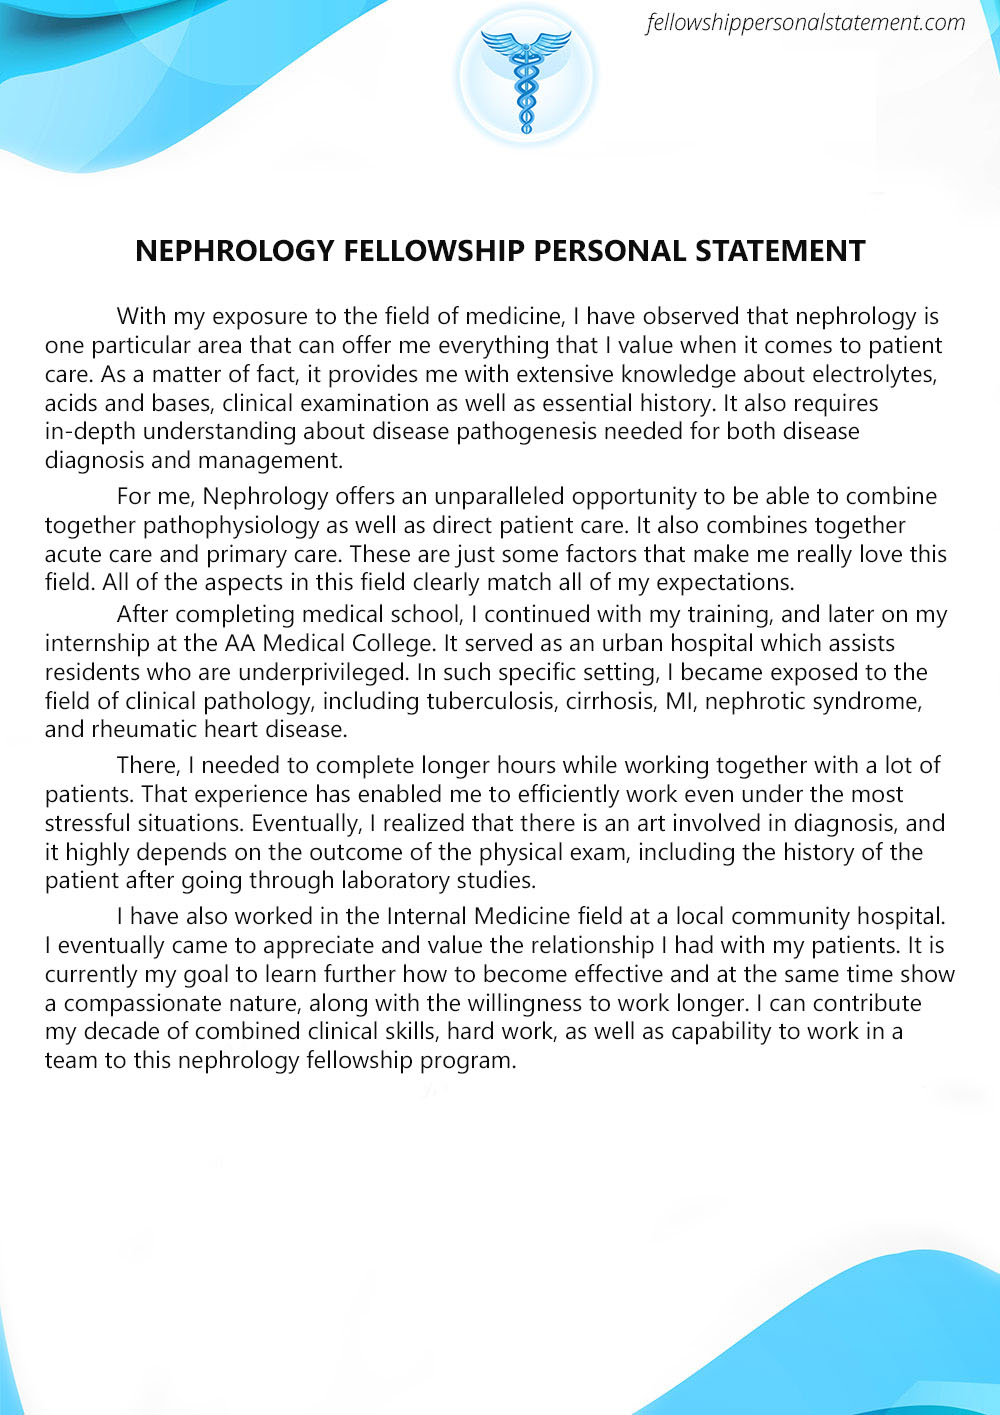 Impressive nephrology fellowship personal statement writing spiritdancerdesigns Choice Image